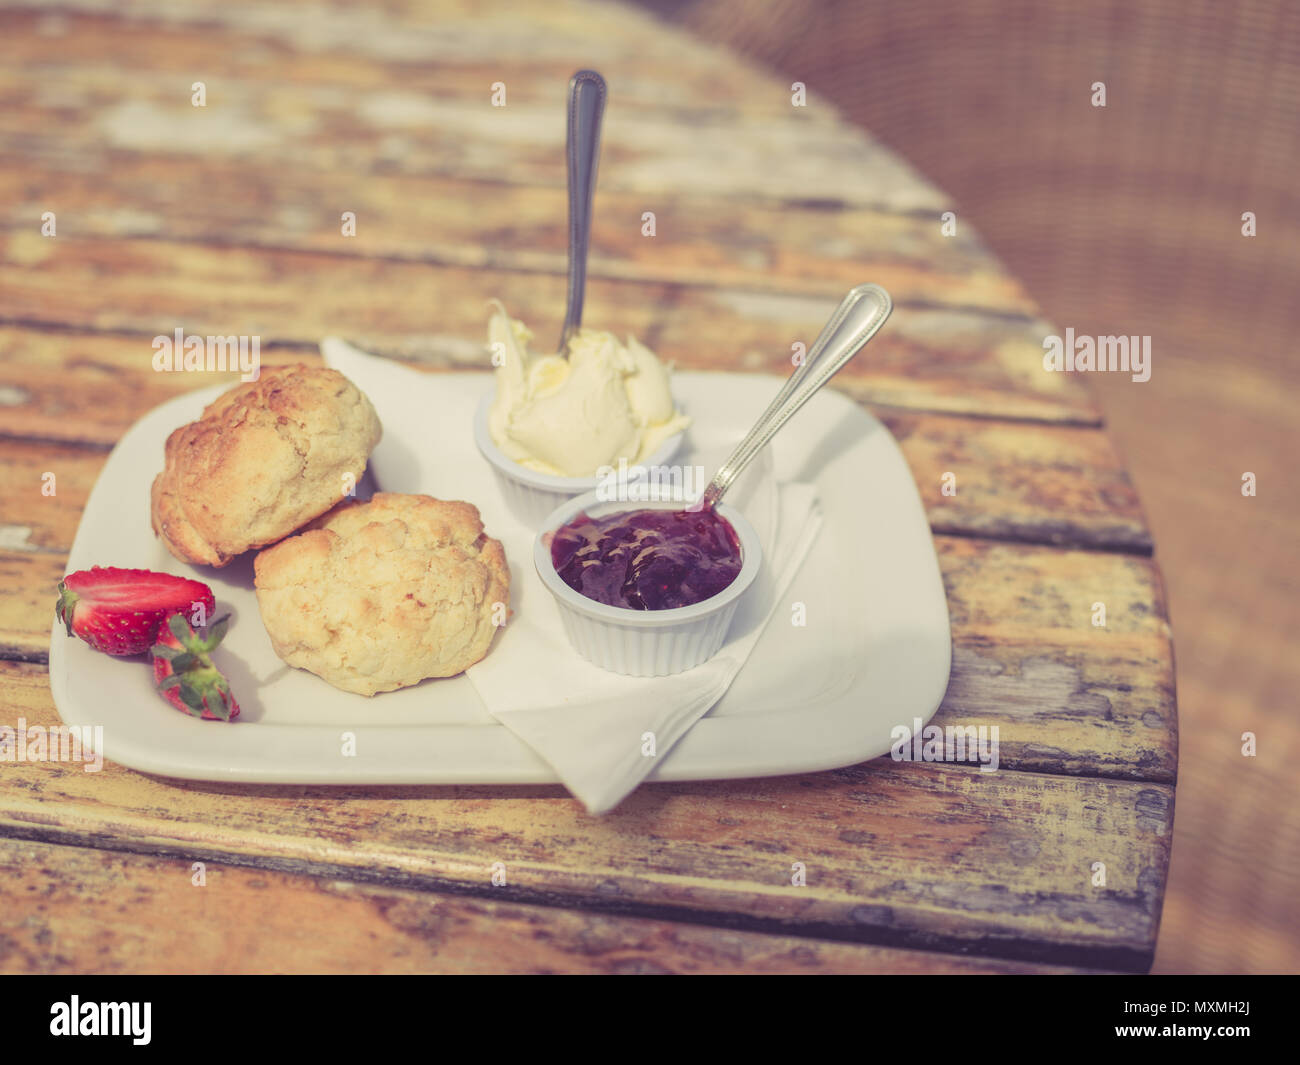 Vintage filtered shot of cream tea with scone and jam on a table - Stock Image